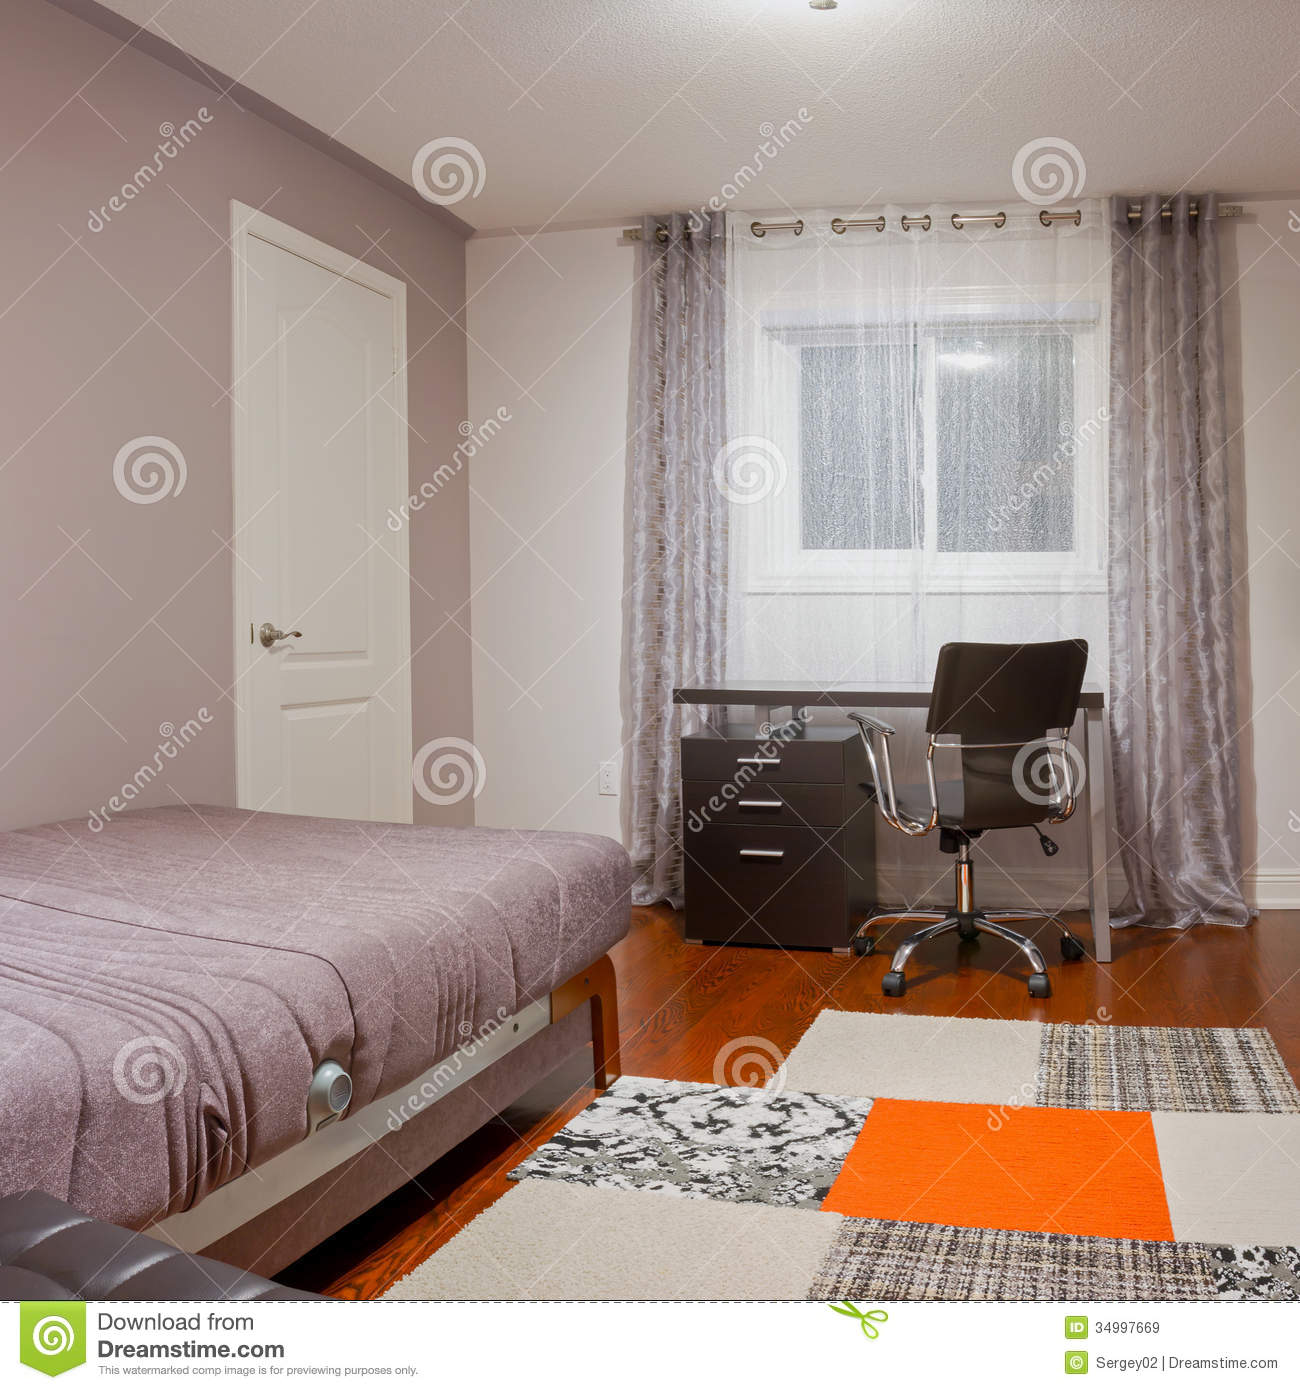 Interior Design Royalty Free Stock Images Image 34997669